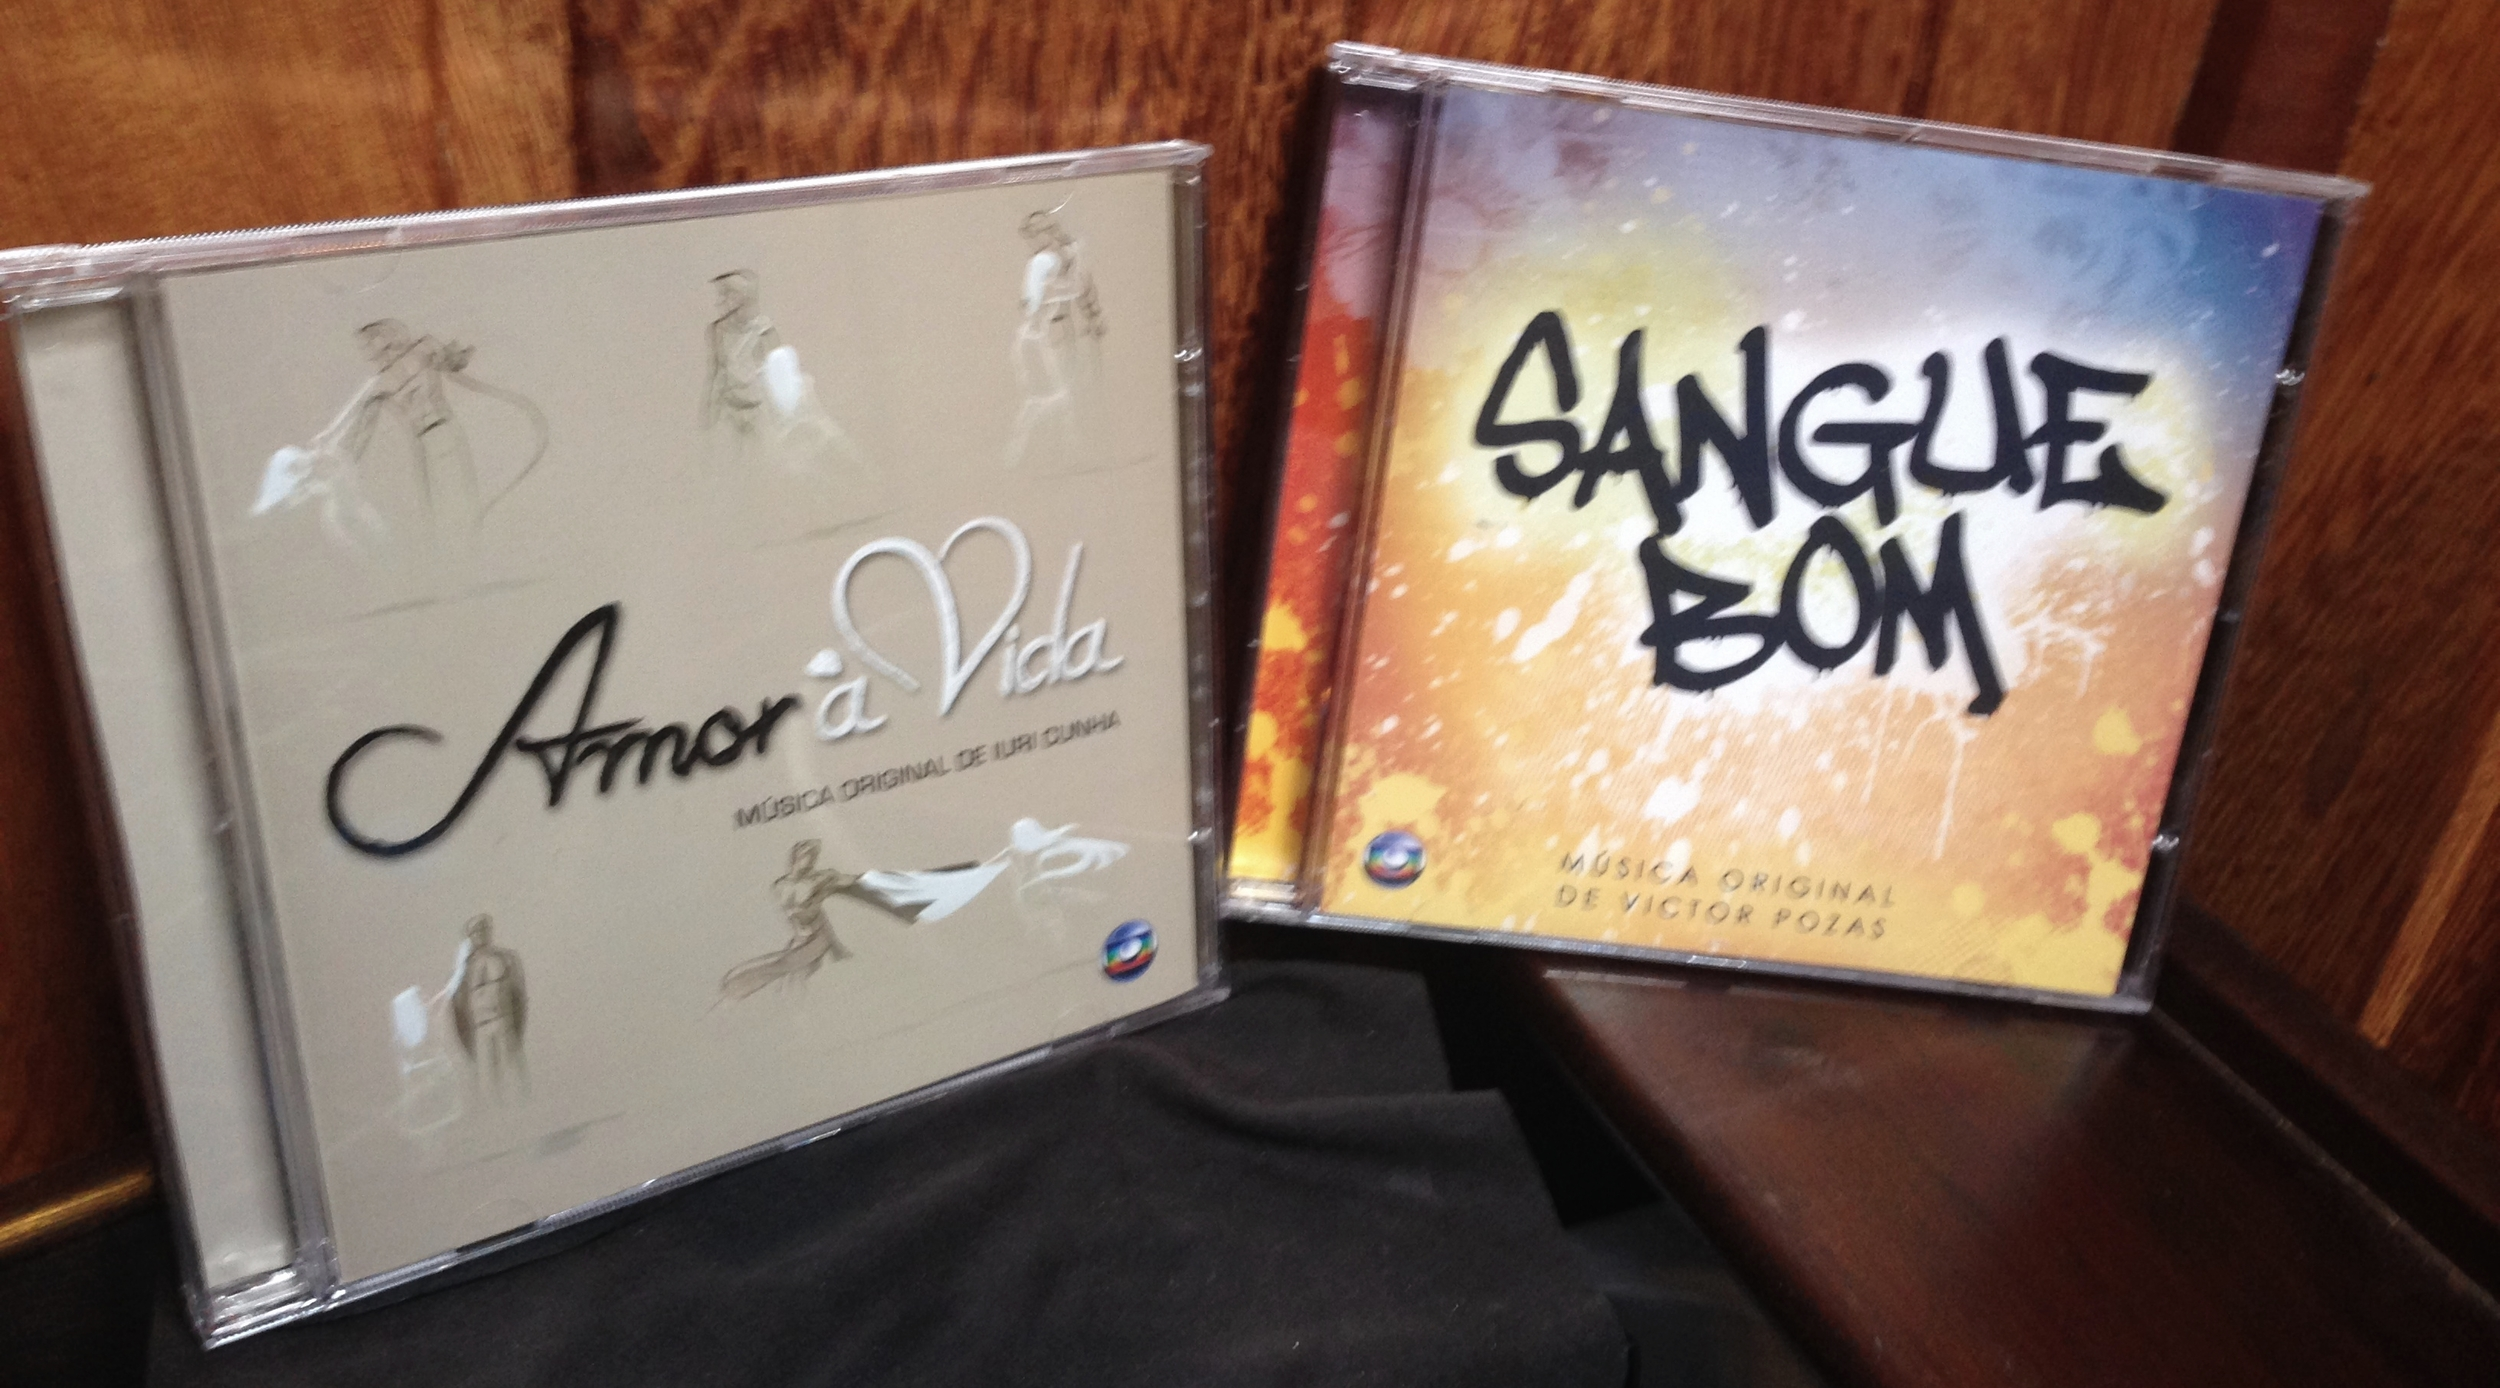 And they are both on iTunes! Here's  Amor à Vida by Iuri Cunhaand  Sangue Bom by Victor Pozas. You can listen to a good chunk of the CD with these links!